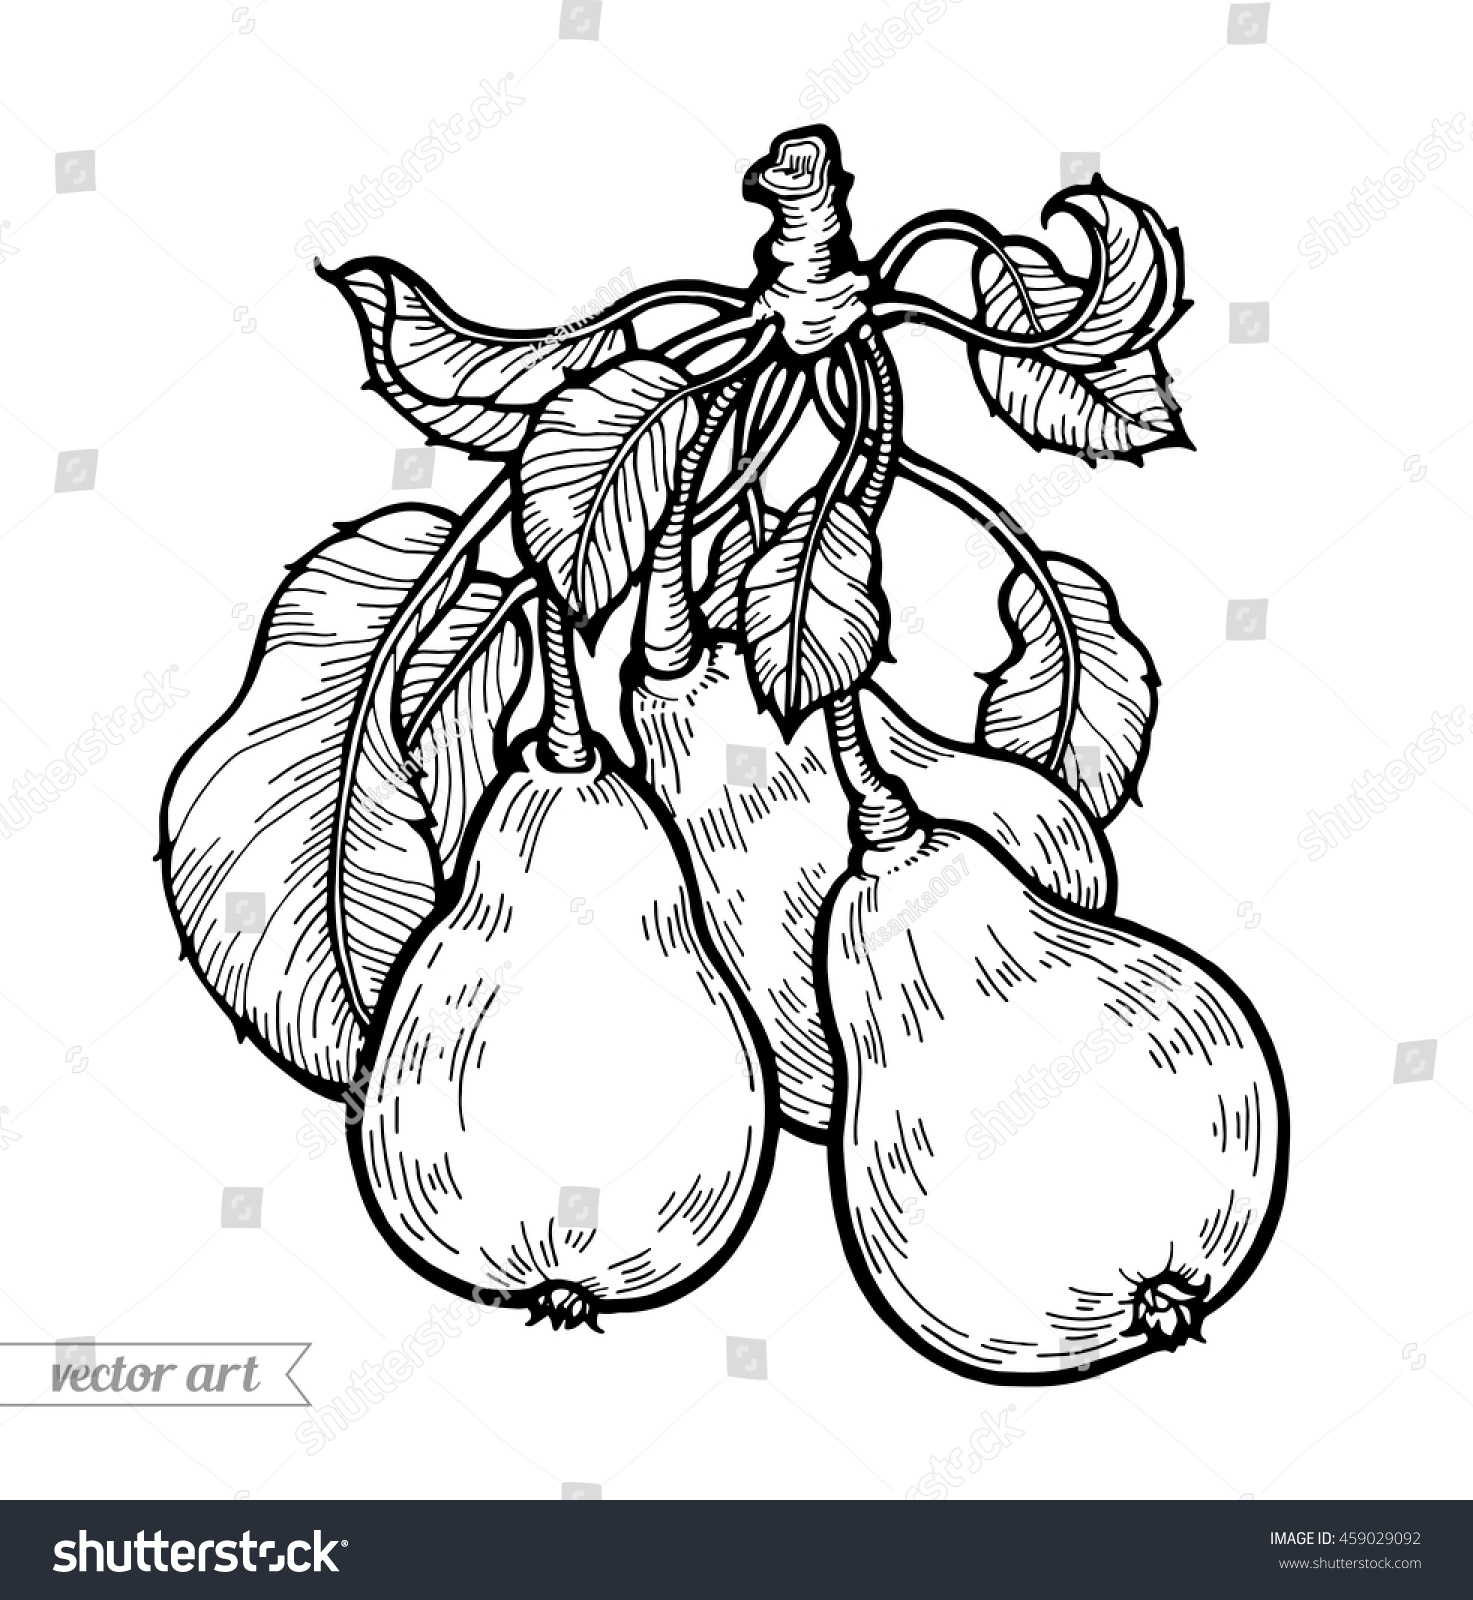 The coloring book clean - Pears Isolated Sweet Fruit Vector Engraving Vintage Illustration Coloring Book Page For Adult